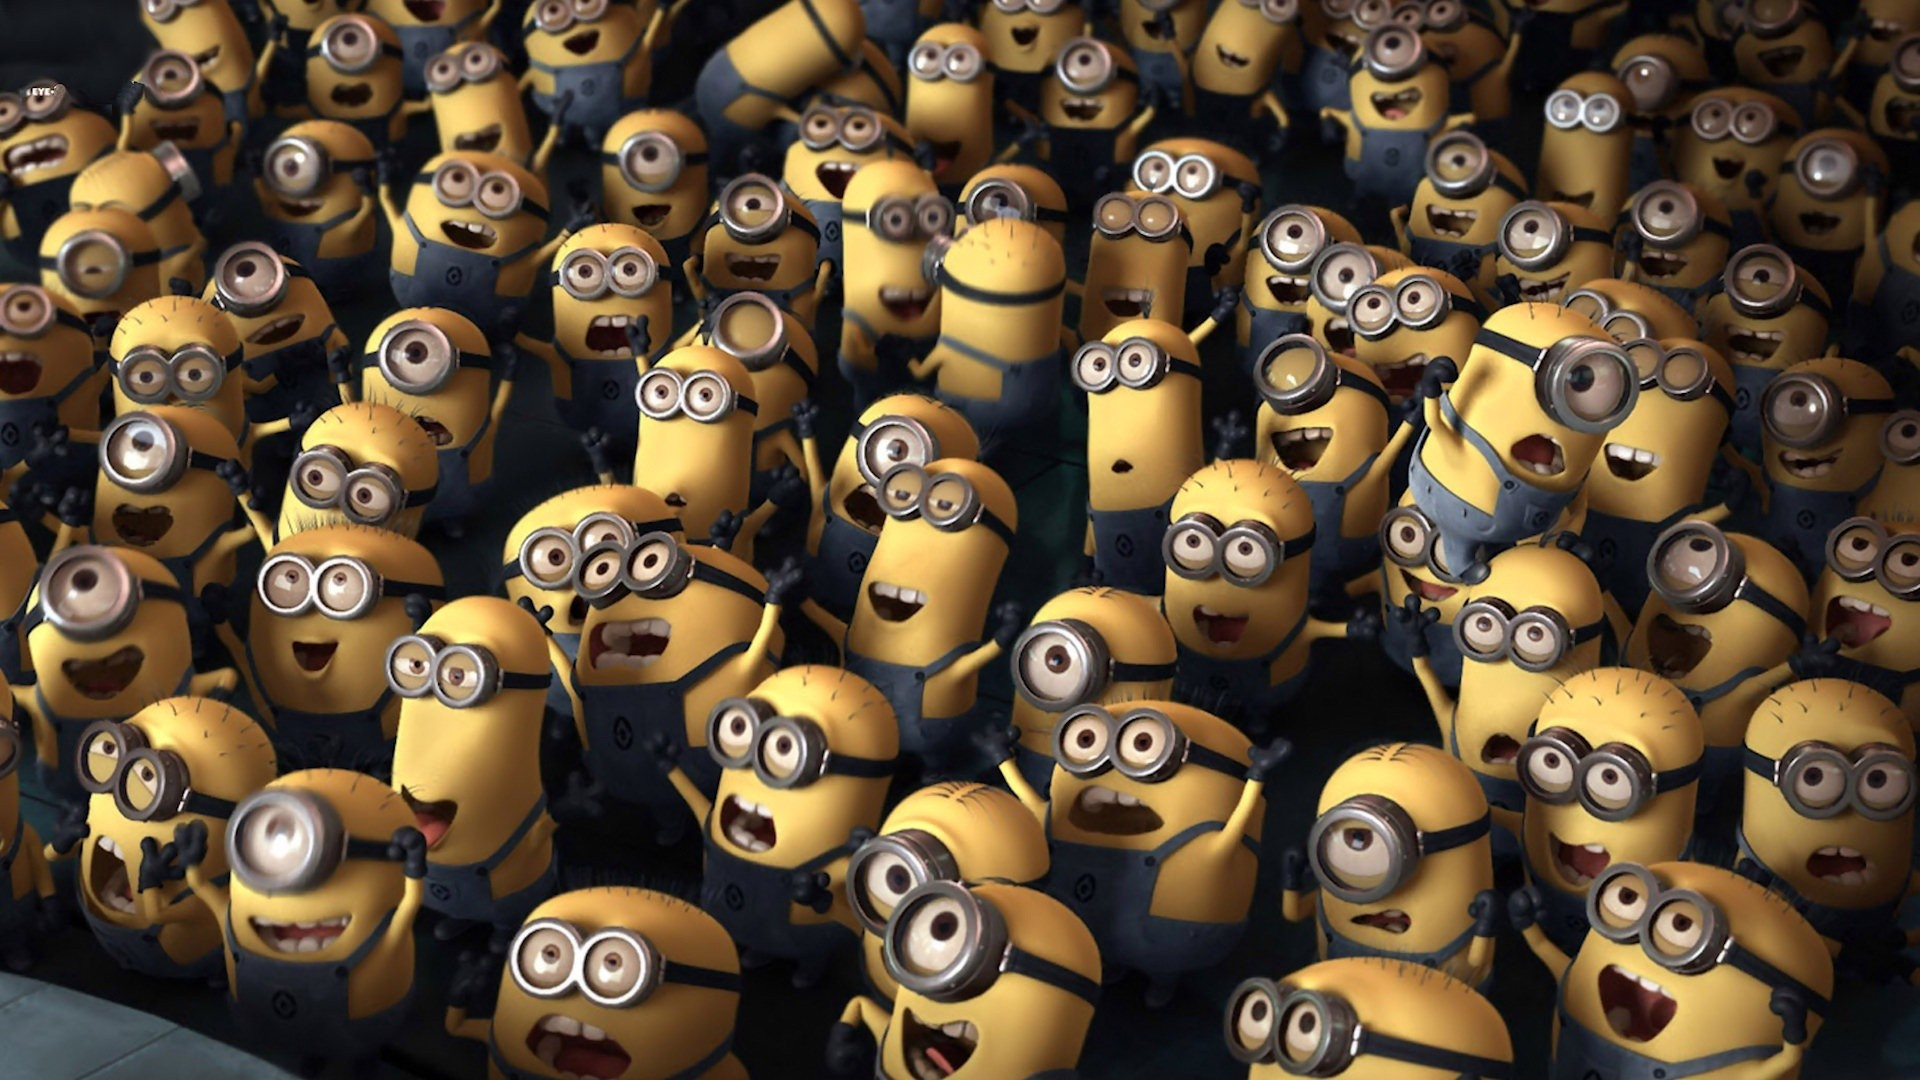 The Minions seem pleased at the good news.